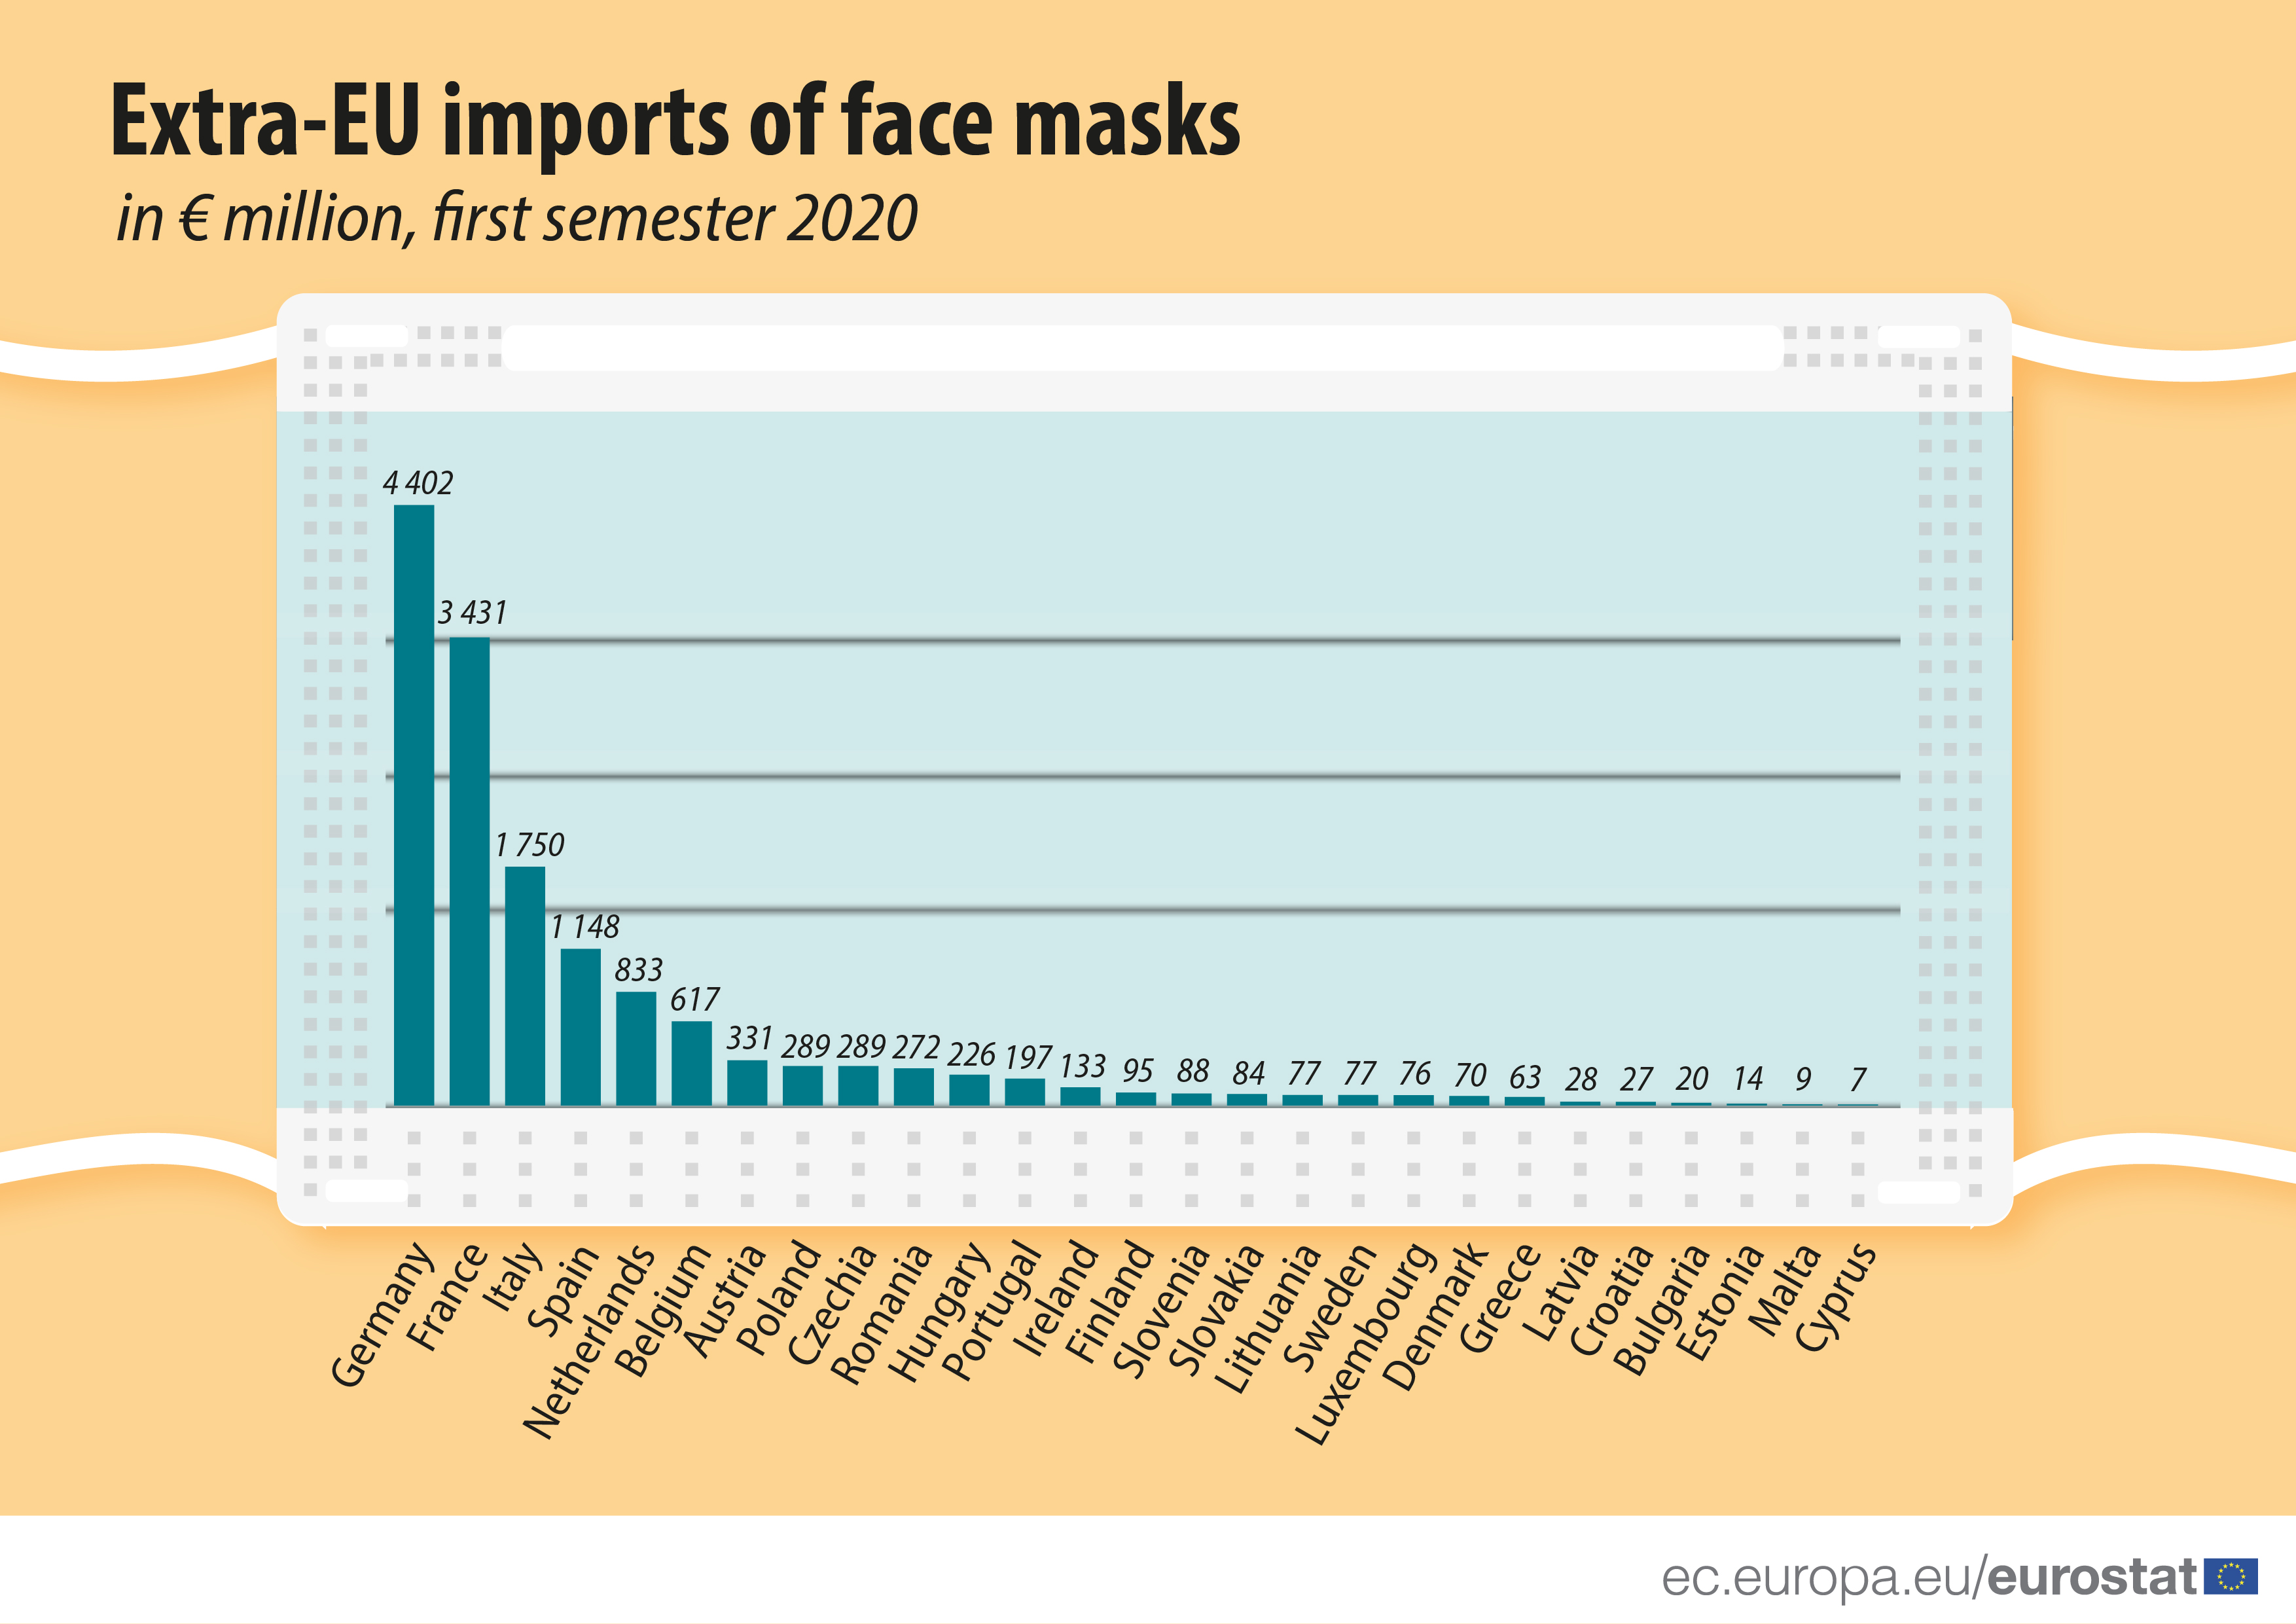 Extra-EU imports of face masks (in eur million)